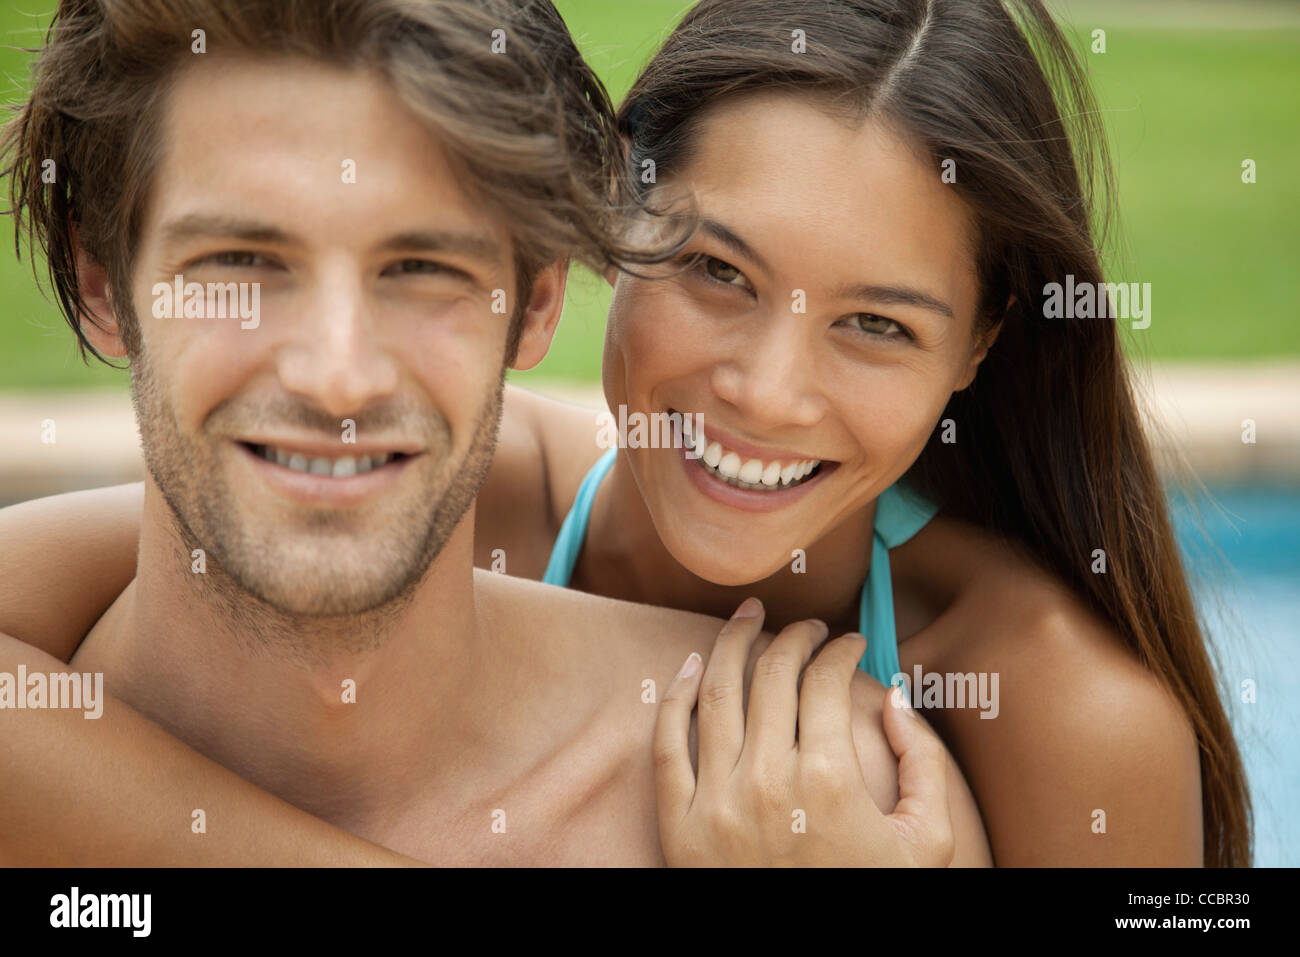 Couple embracing outdoors, portrait Stock Photo